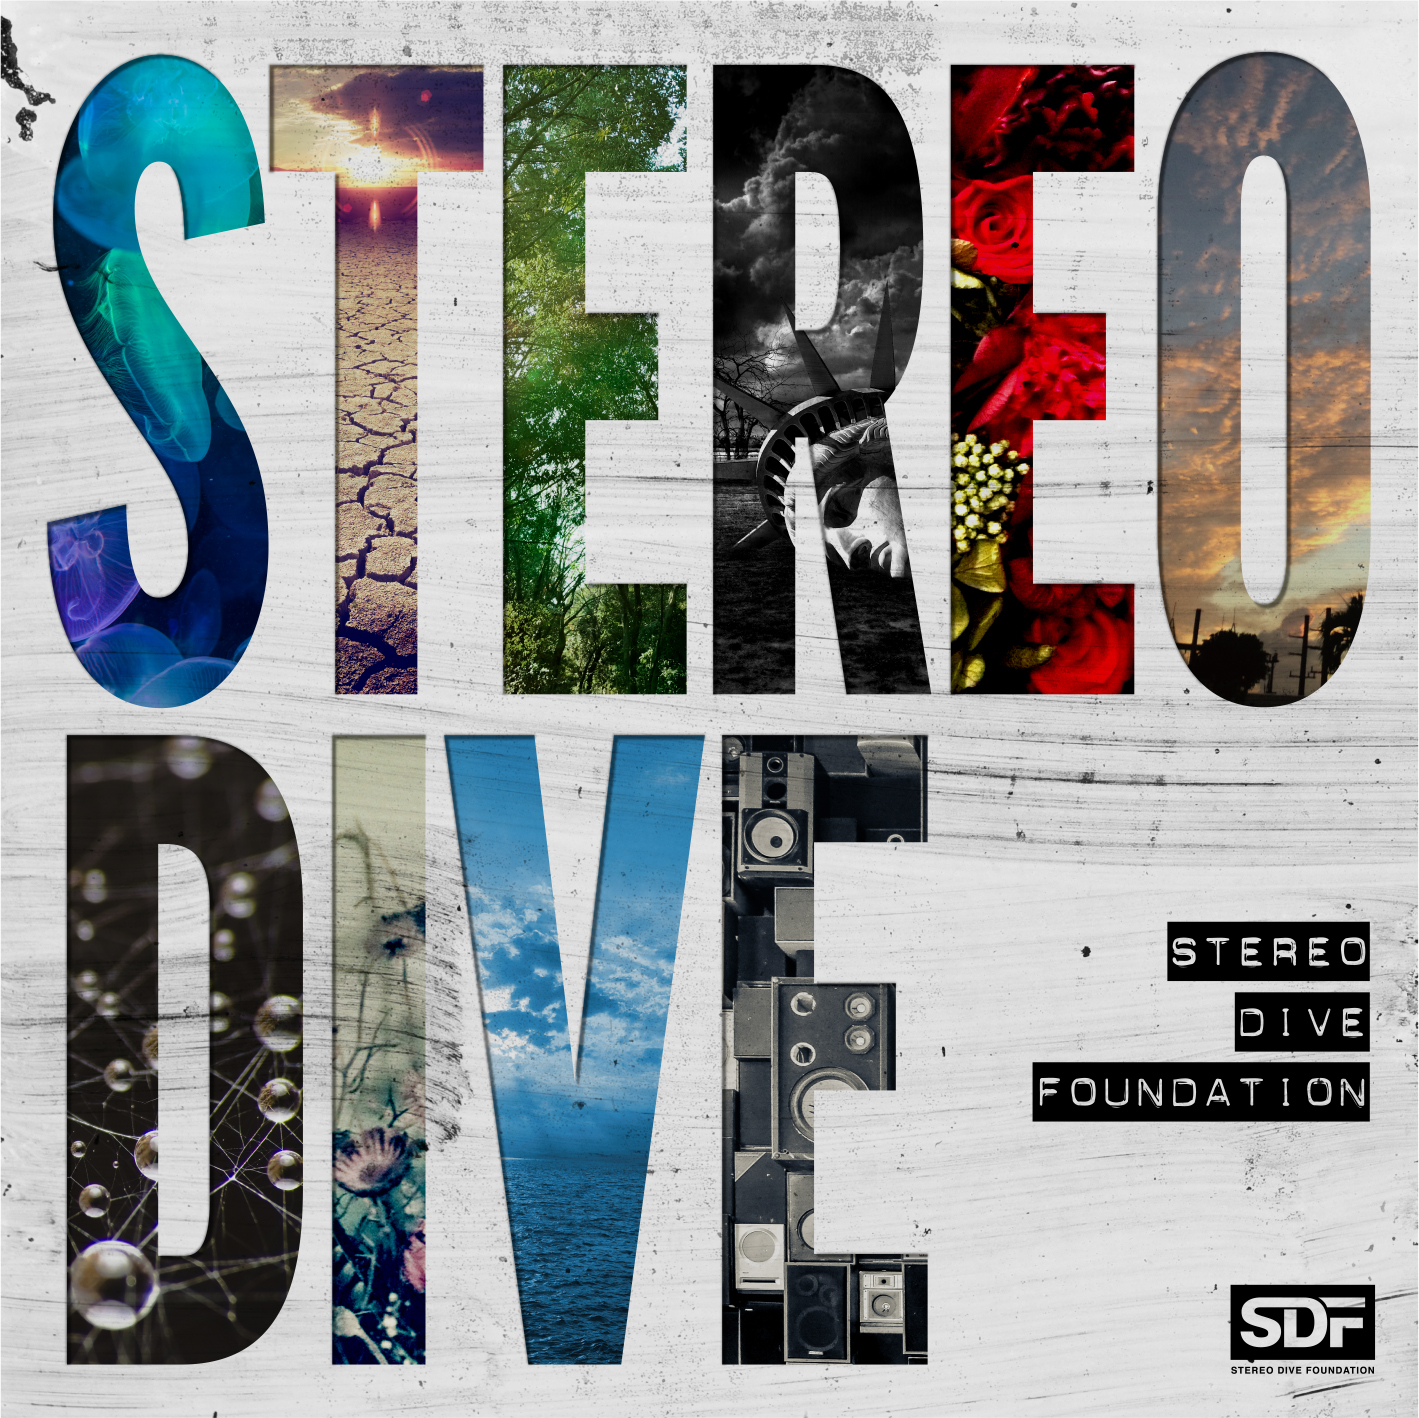 STEREO DIVE FOUNDATION 1st ALBUM『STEREO DIVE』サブスクリプションサービスでの配信開始サムネイル画像